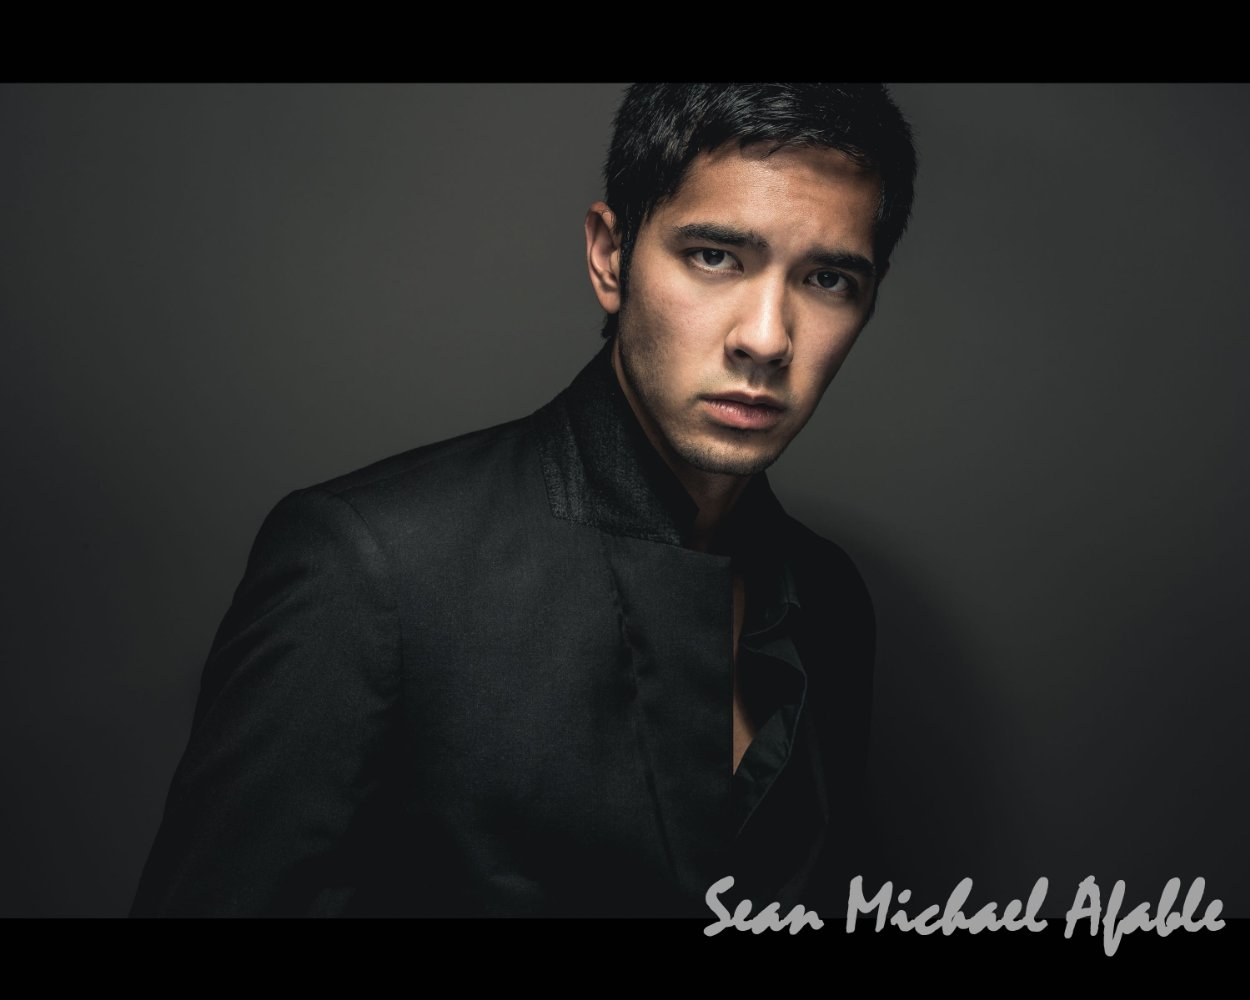 Sean Michael Afable